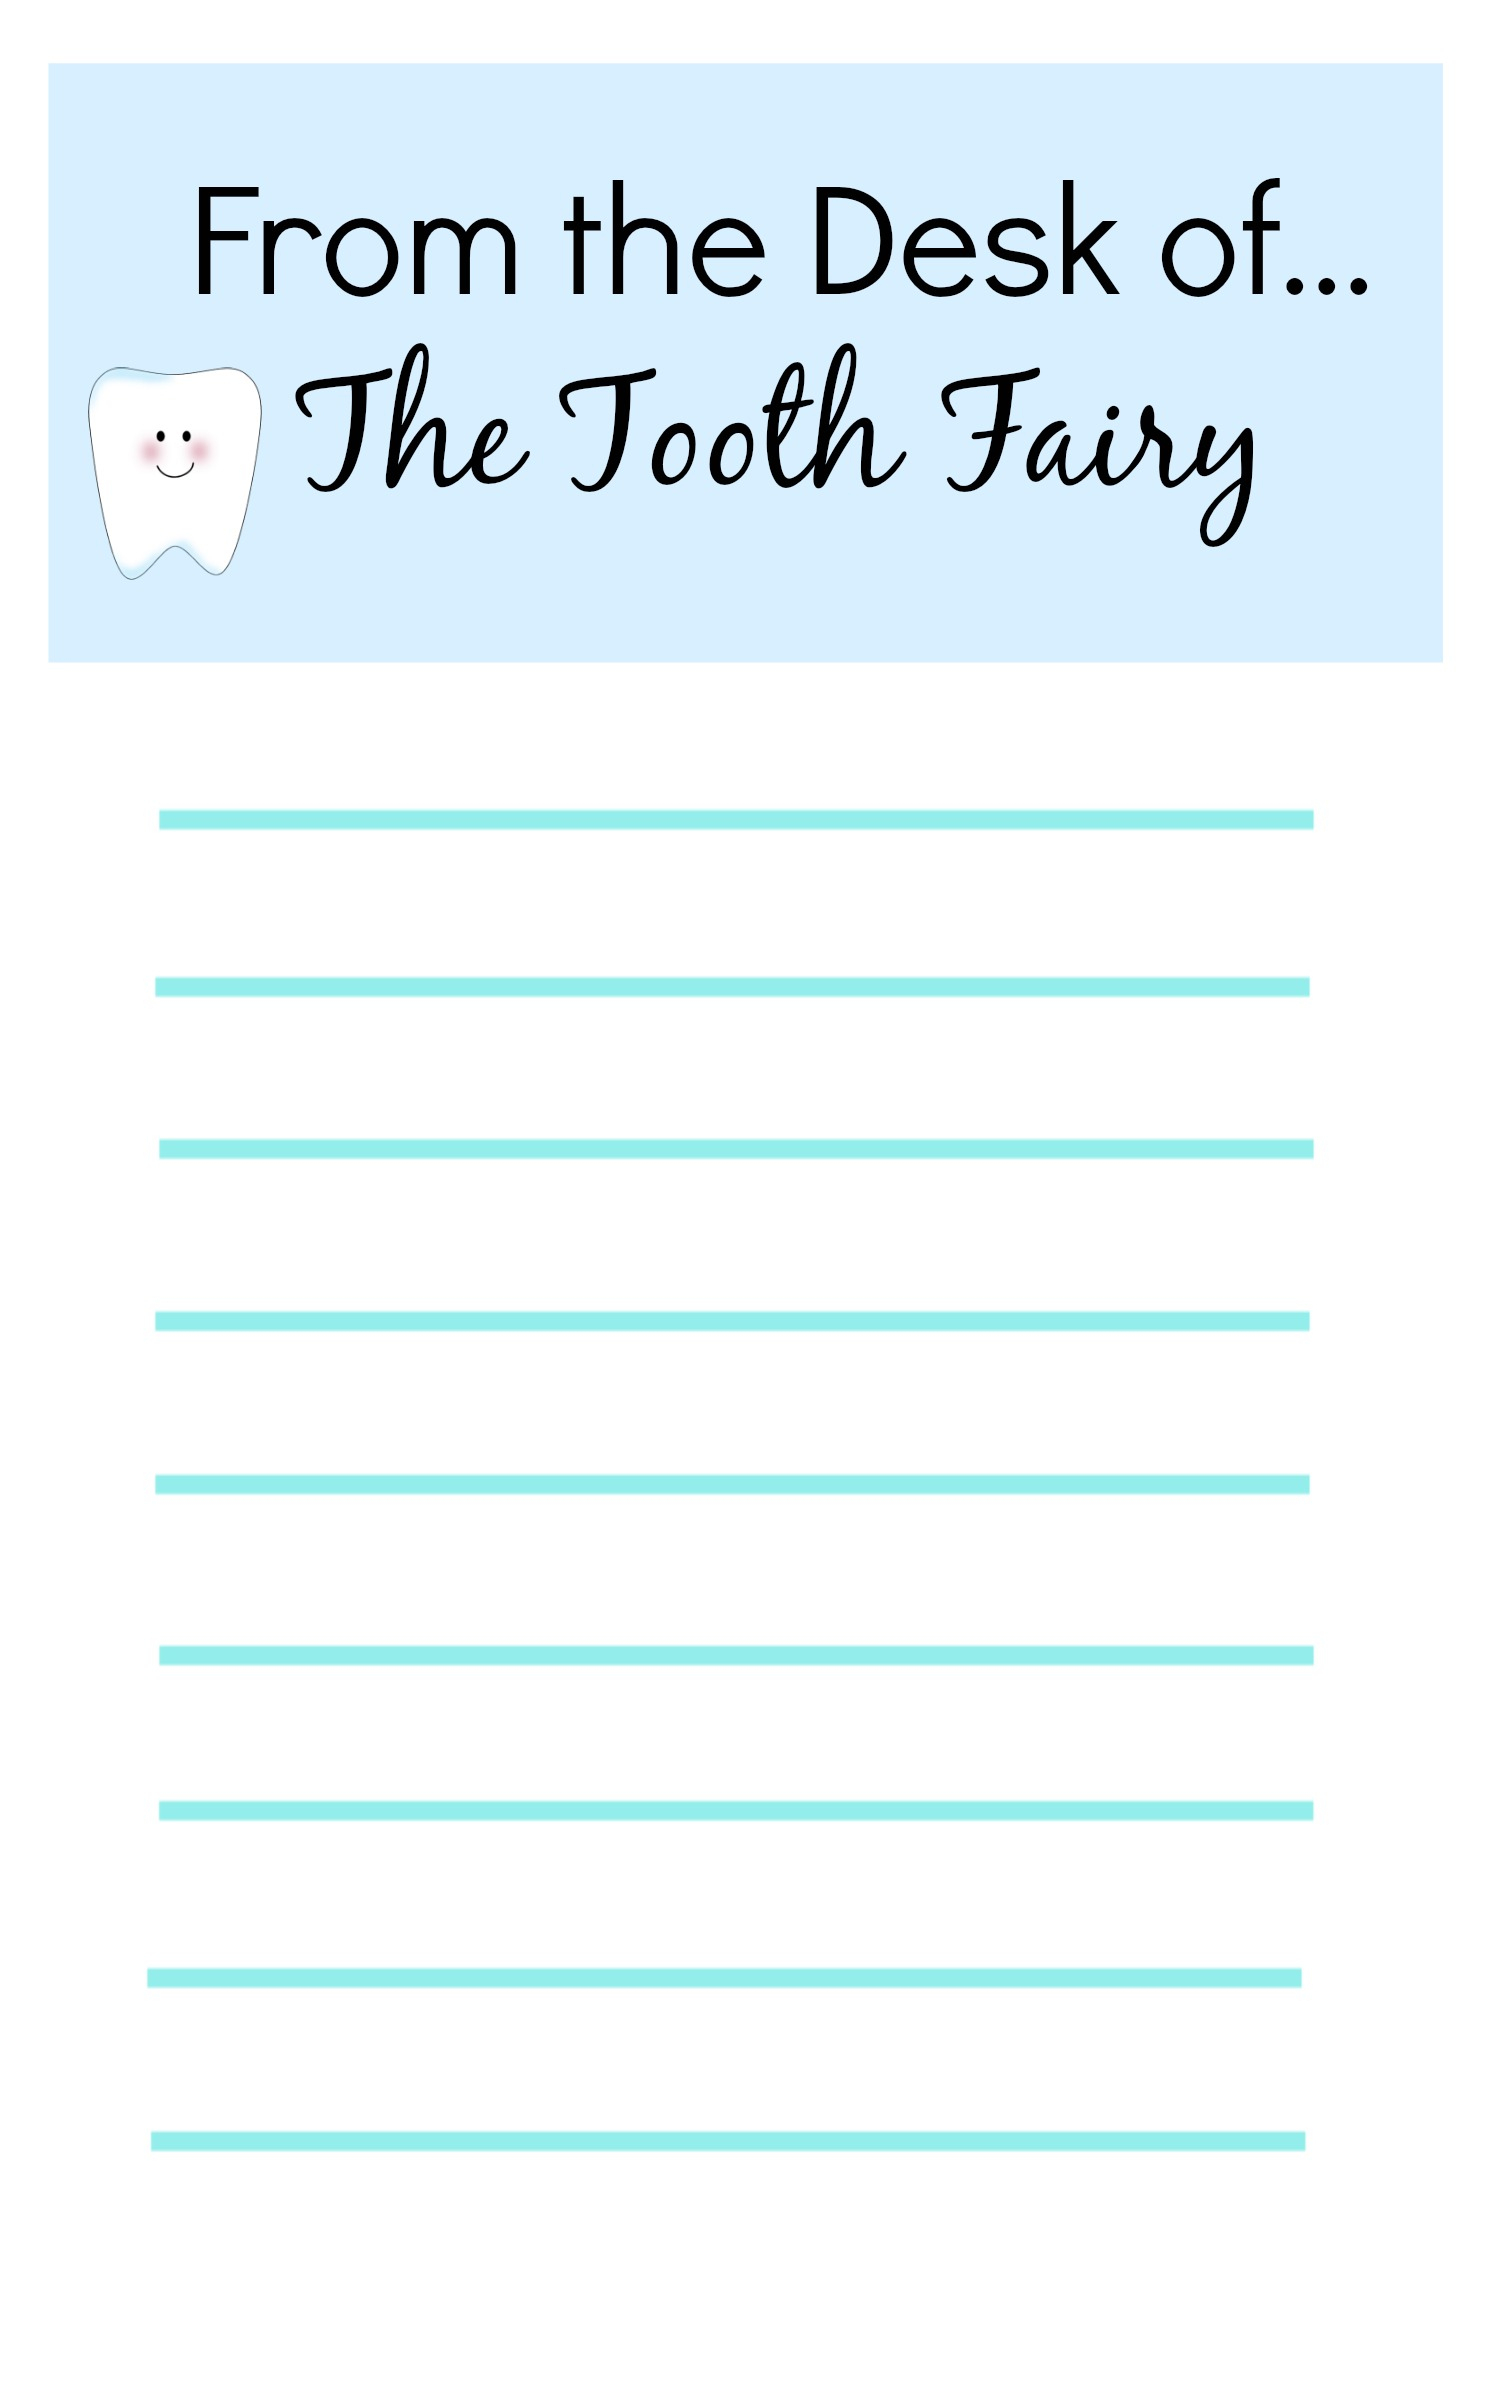 Tooth Fairy Ideas And Free Printables: Tooth Fairy Letterhead Report - Free Printable Tooth Fairy Pictures